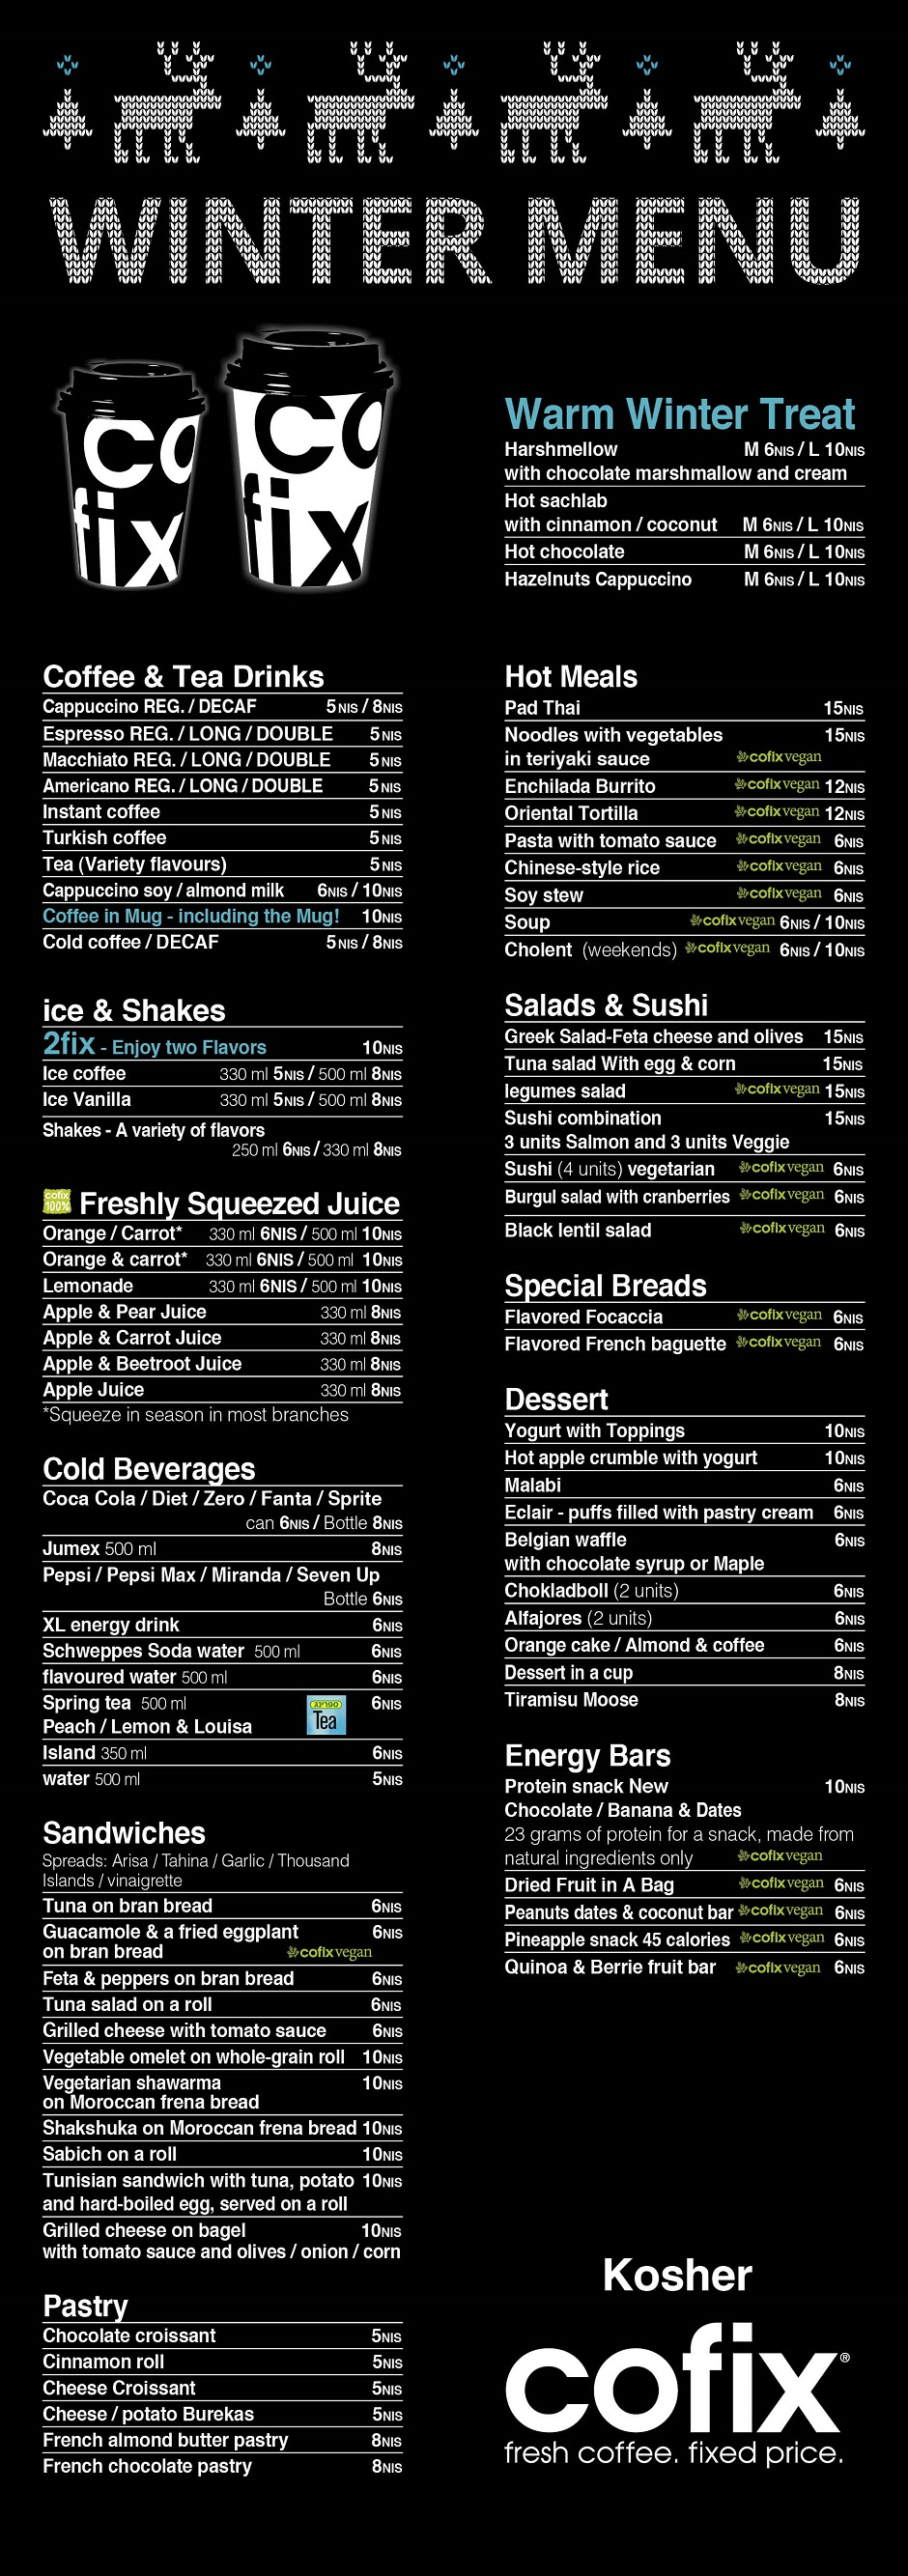 Cofix Summer menu kosher Sandwiches Omelet triangle Cream cheese and salmon triangle Vegan antipasti triangle Avocado bun Tuna salad bun Sabih and egg bun Tzfatit cheese and antipasti grain bun Focaccias vegan Olive focaccia Hyssop focaccia Onion focaccia Dried tomato focaccia Pastry Large chocolate croissant Large croissant Large cinnamon roll Large Danish cheese Apple filo pastry Bourekas cheese Bourekas potato Pretzel Gluten free muffin On the go Macaroon cookie Chewing gum 2 packs Alfajores 2 units Cookillida cookies 2 units Dried fruits Mints in a box Health foods Chocolate coconut and coffee bar Dates pistachio almond and peanuts bar Coconut fruit blueberry granola and cranberry bar Almonds pistachio and peanuts bar Fresh vegetables Muesli Ice cream bars Kids sponge bob Popsicle Gumigam sorbet Popsicle Iced popsicle 2 units Chocolate popsicle 2 units Prili popsicle Extreme vanilla roll Bisculida Joya popsicle Delicious A variety of vegan dishes Noodles Pasta Israeli cuscus Rice Quiche Our sweets Blancmange Chocolate mousse Cheesecake Tiramisu Coffee and tea drinks Cappuccino regular can be served with soy Cappuccino decaf can be served with soy Espresso regular Espresso long Espresso double Macchiato regular Macchiato long Macchiato double Americano regular Americano long Americano double Instant coffee can be served with soy Water based instant coffee Turkish coffee Milk chocolate hot can be served with soy Milk chocolate can be served with soy Tea various flavors can be served with milk Frappuccino regular can be served with soy Frappuccino decaf can be served with soy Summer drinks Milkshakes strawberry banana chocolate hazelnuts Ice coffee Ice vanilla Ice passion fruit Freshly squeezed juice Orange squeezed in the season Carrot squeezed in-house Orang and carrot squeezed in the season Lemonade Cold beverages Coca cola 330 ml Diet coca cola 330 ml Coca cola zero 330 ml XL energy drink Neviot mineral water 500 ml Soda water 250 ml Diet sprite 330 ml Sprite 3